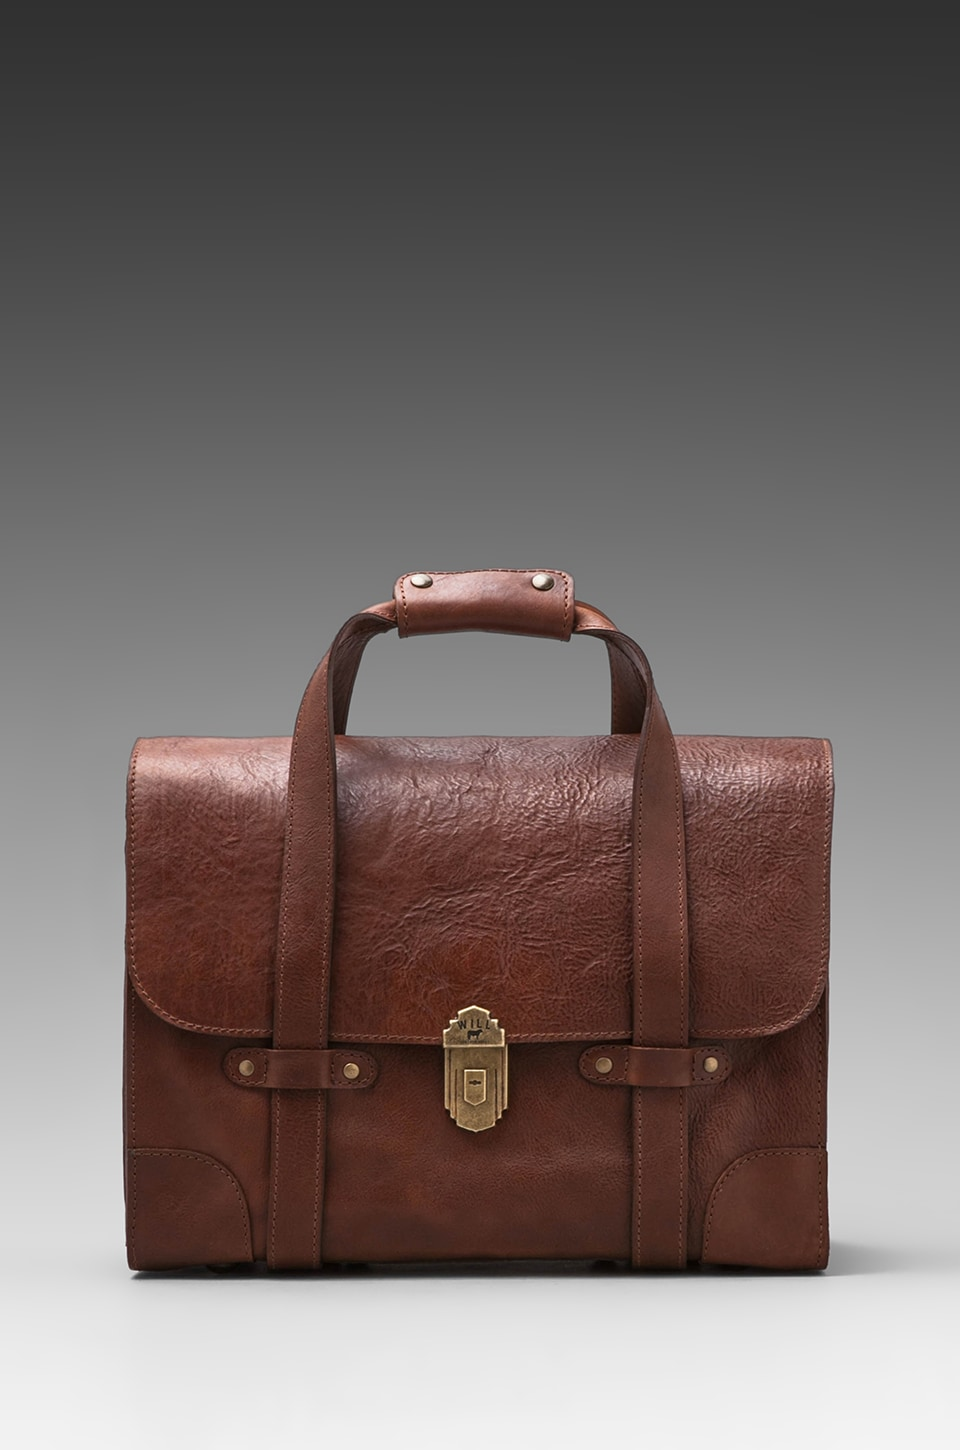 WILL Leather Goods Everett Satchel Leather Bag in Cognac